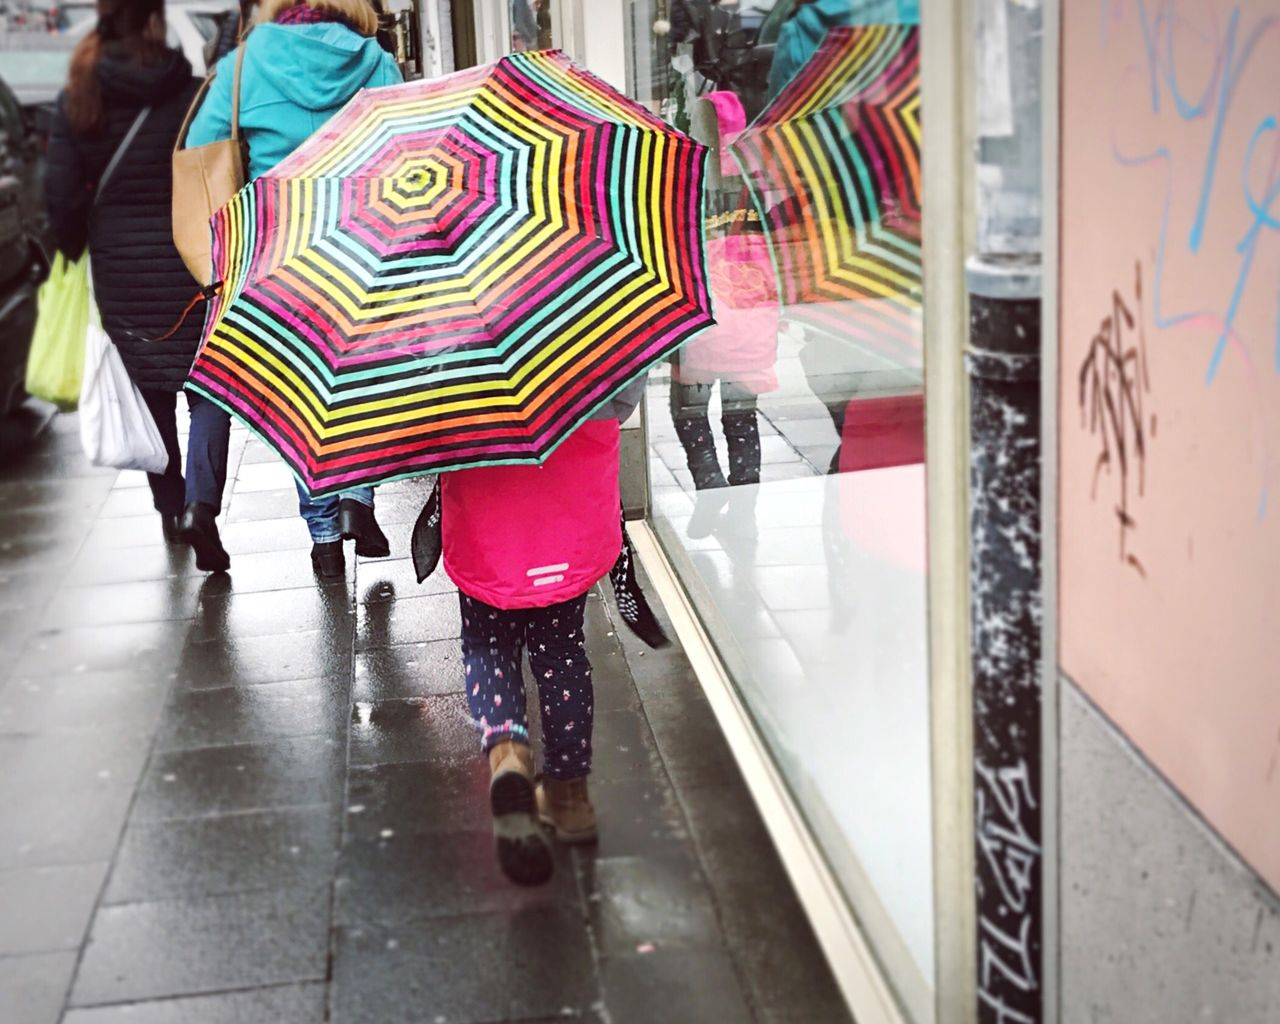 Happy in the Rain Rainy Days Low Section Multi Colored Consumerism People Outdoors Kids Streetphotography Street Fashion Urban Lifestyle City Life EyeEm Gallery Colors Reflection Window Reflections Millennial Pink